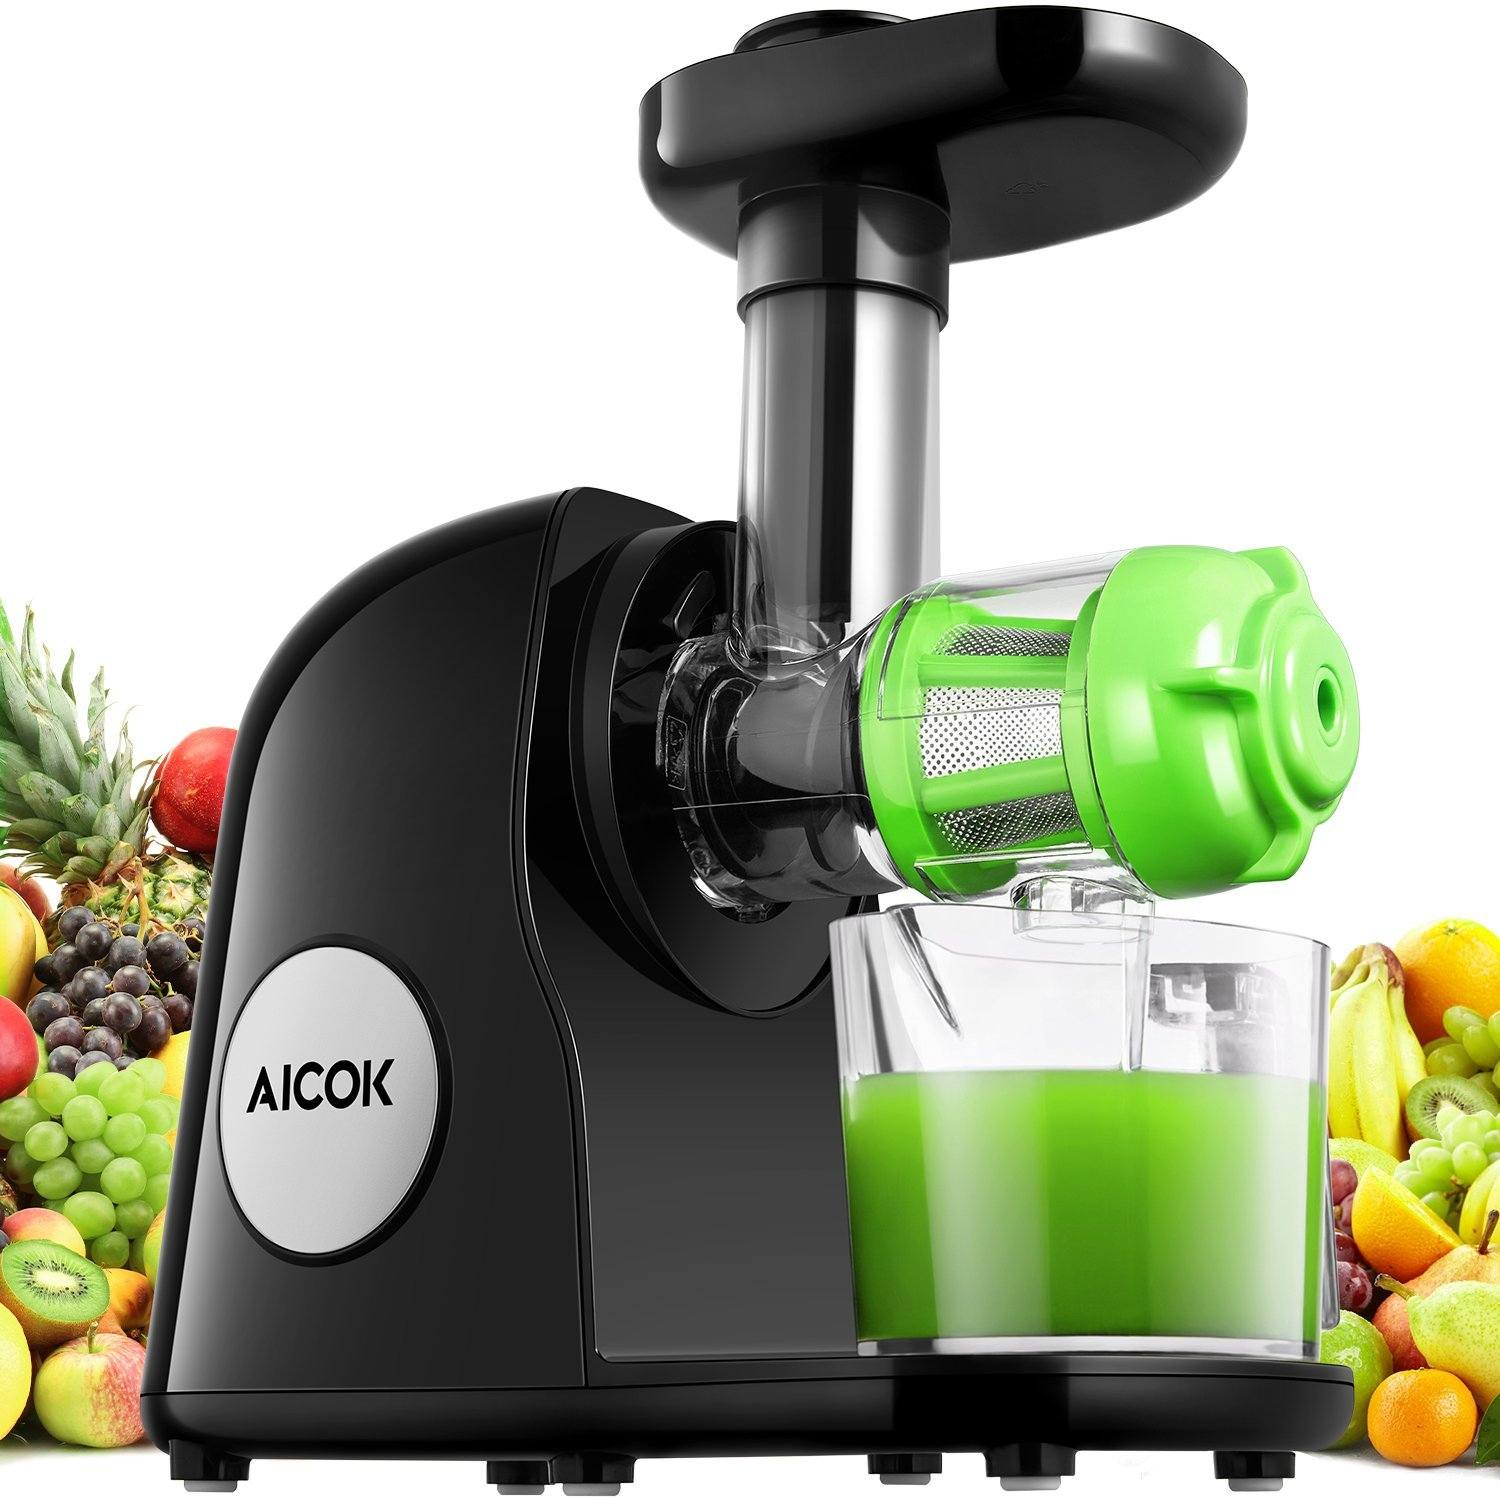 Aicok Juicer Slow Masticating Juicer Extractor Reviews : Aicok Slow Masticating Juice Extractor Review 2018 ...